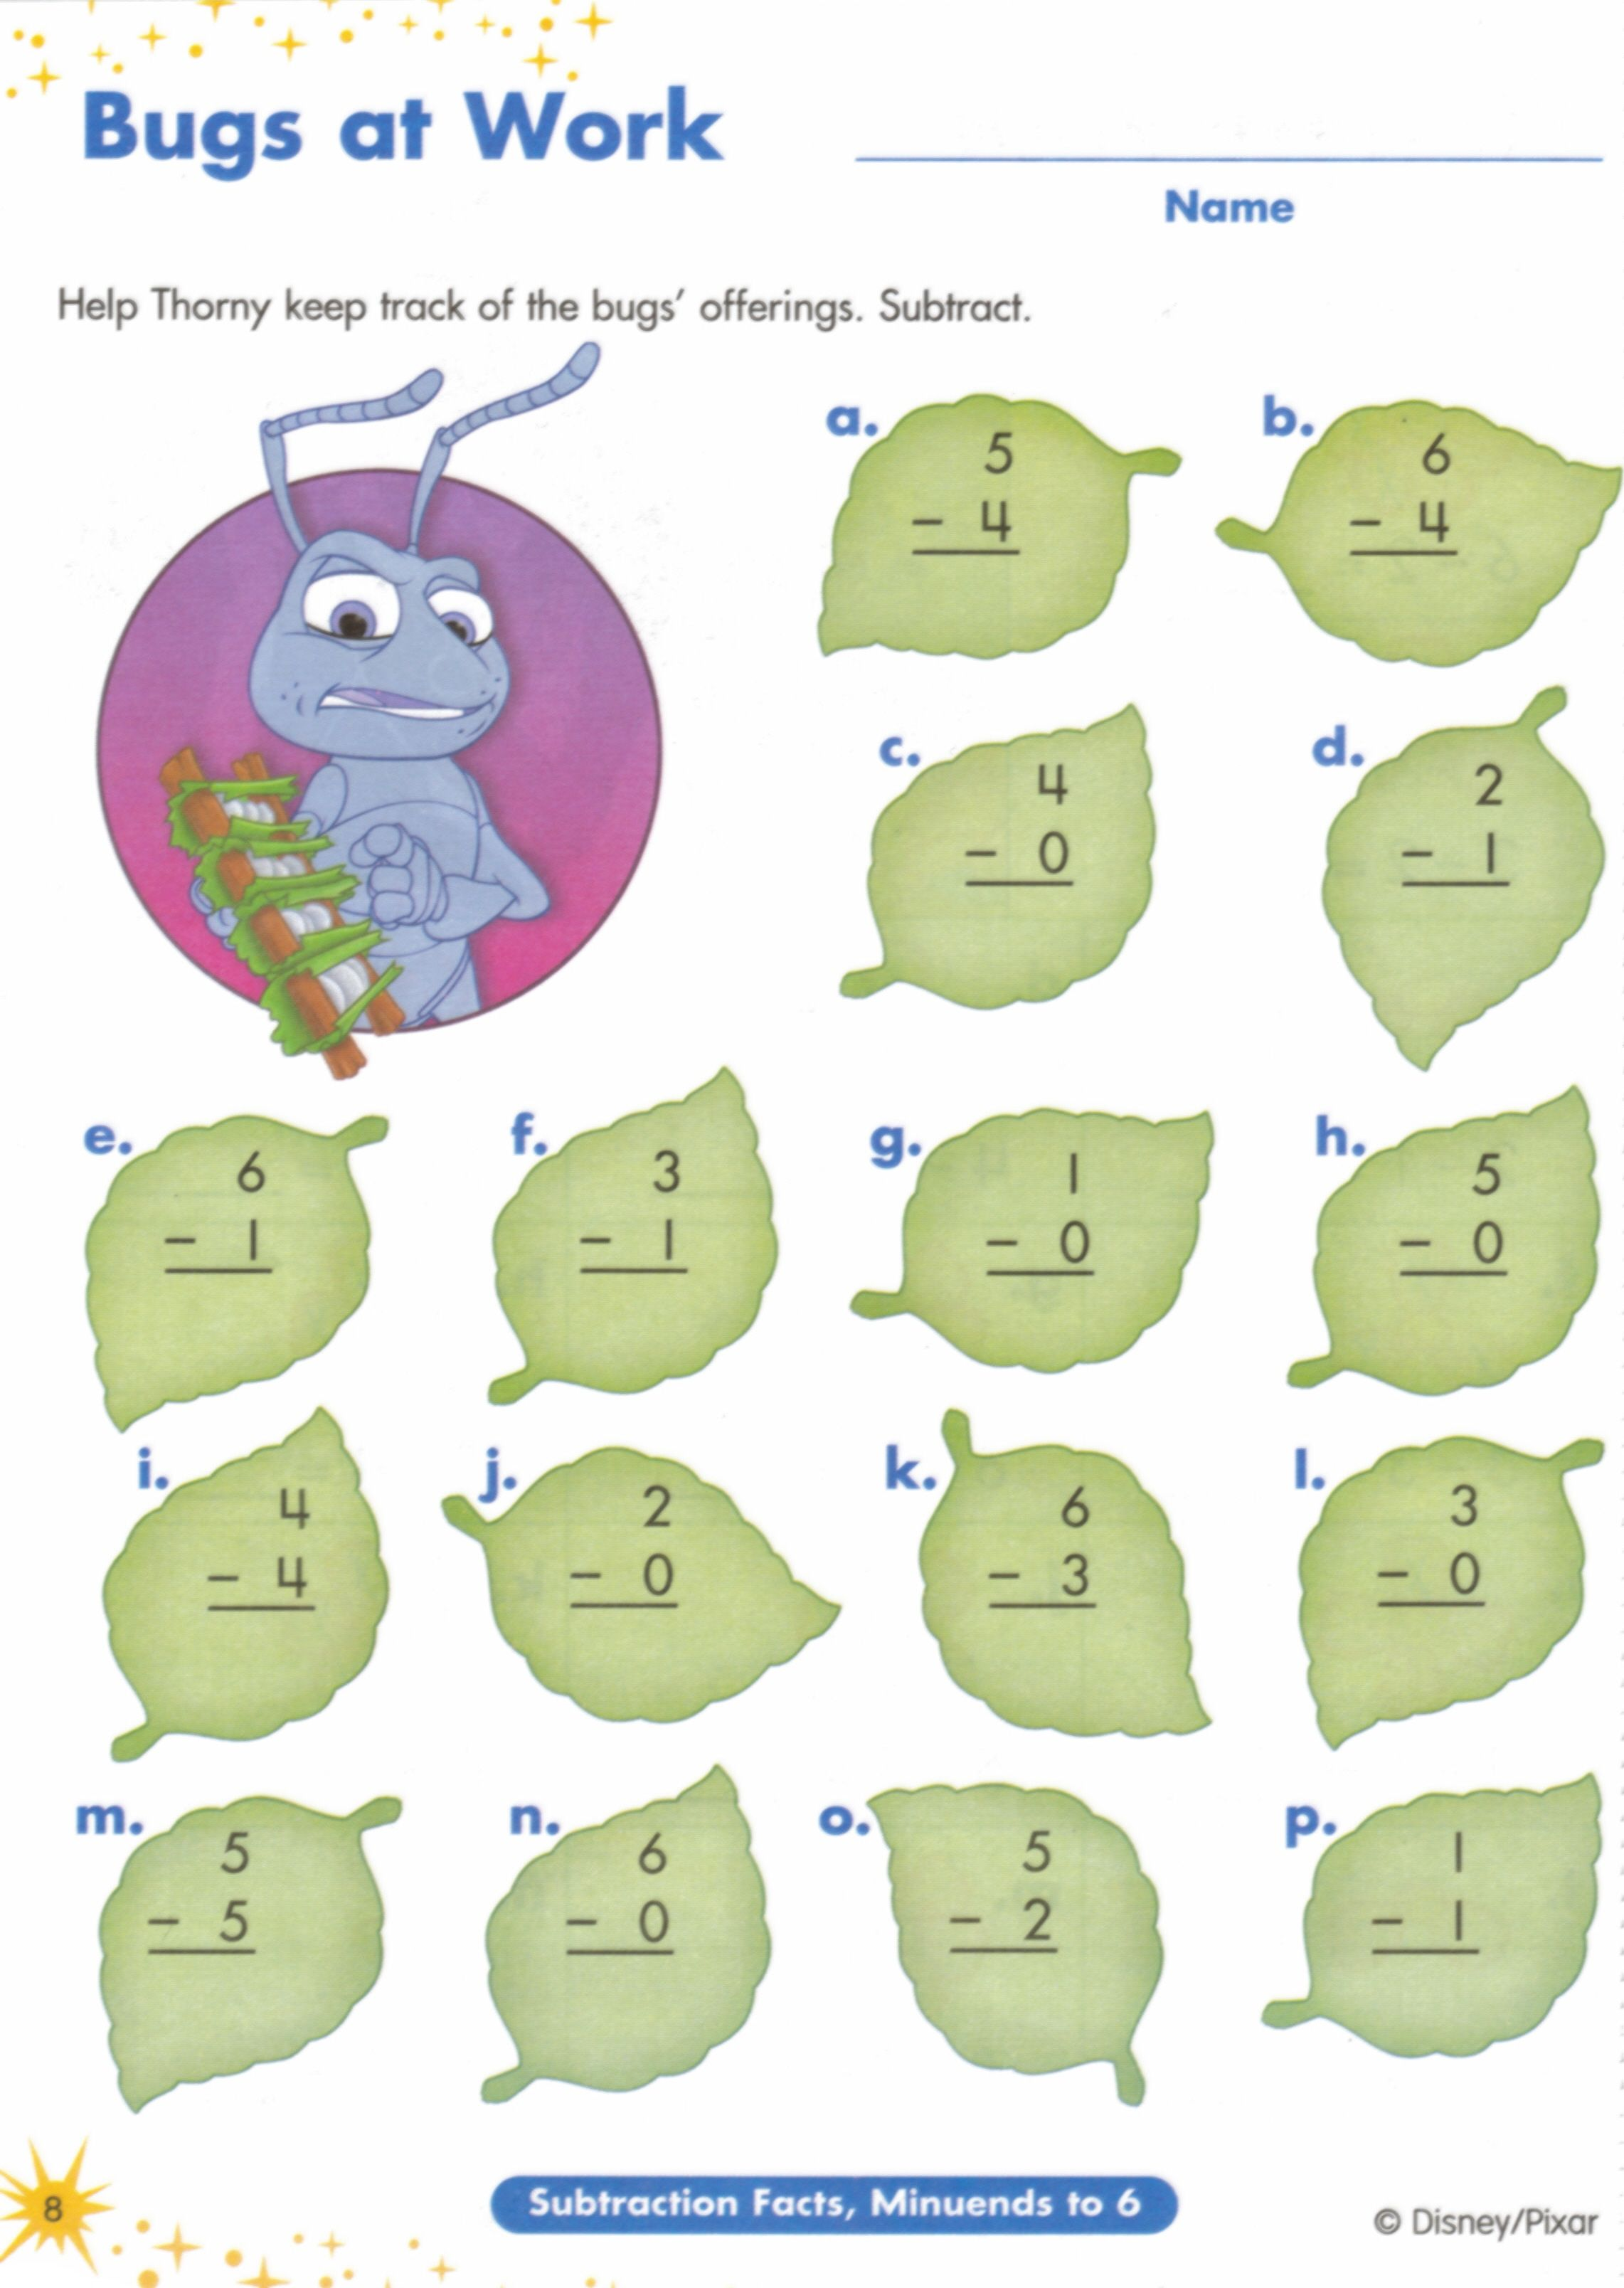 Proatmealus  Pretty  Images About Worksheets On Pinterest  Fun Facts For Kids  With Gorgeous  Images About Worksheets On Pinterest  Fun Facts For Kids Earth Day Worksheets And Jungles With Cute Esl Worksheets For Intermediate Students Also Worksheet Of Addition And Subtraction In Addition Worksheets For Senior Kg Students And Prefixes Suffixes And Roots Worksheets For Middle School As Well As Birth Plans Worksheets Additionally Worksheets On Multiplication For Grade  From Pinterestcom With Proatmealus  Gorgeous  Images About Worksheets On Pinterest  Fun Facts For Kids  With Cute  Images About Worksheets On Pinterest  Fun Facts For Kids Earth Day Worksheets And Jungles And Pretty Esl Worksheets For Intermediate Students Also Worksheet Of Addition And Subtraction In Addition Worksheets For Senior Kg Students From Pinterestcom